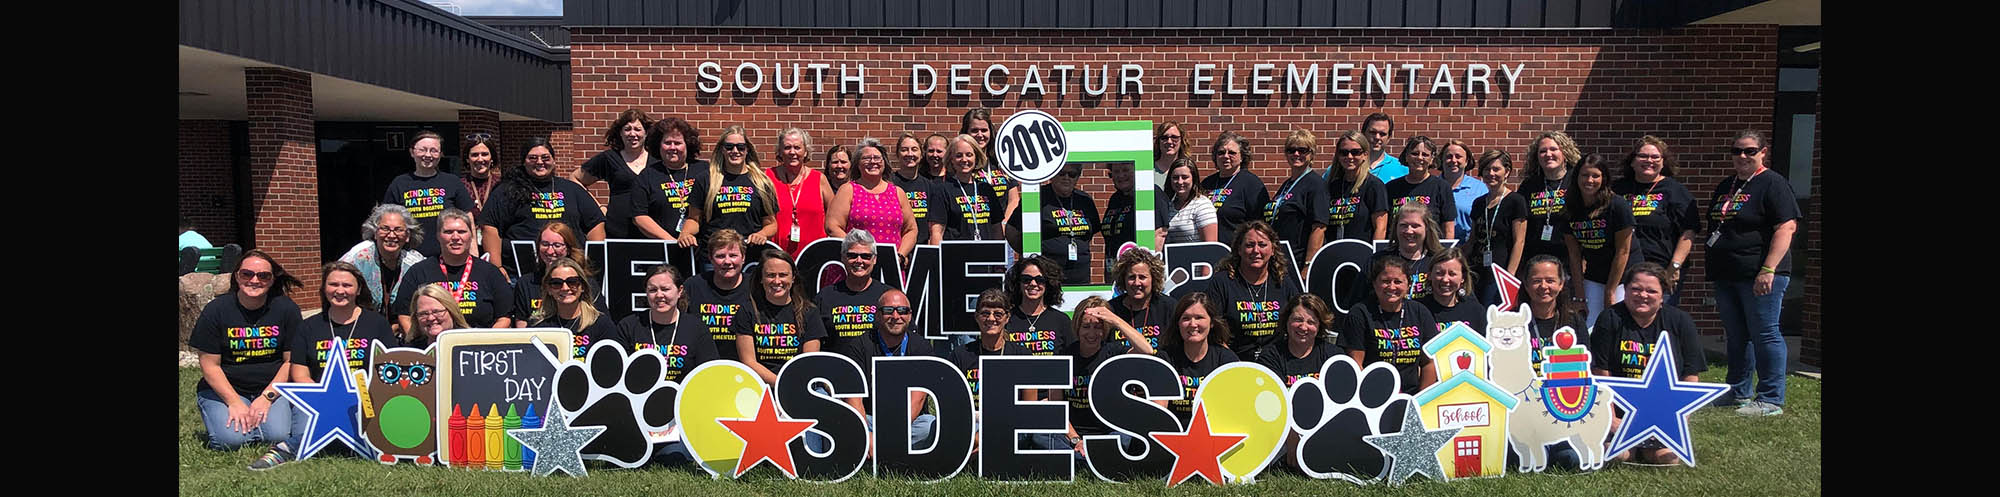 South Decatur Elementary friendly staff in front of their school building